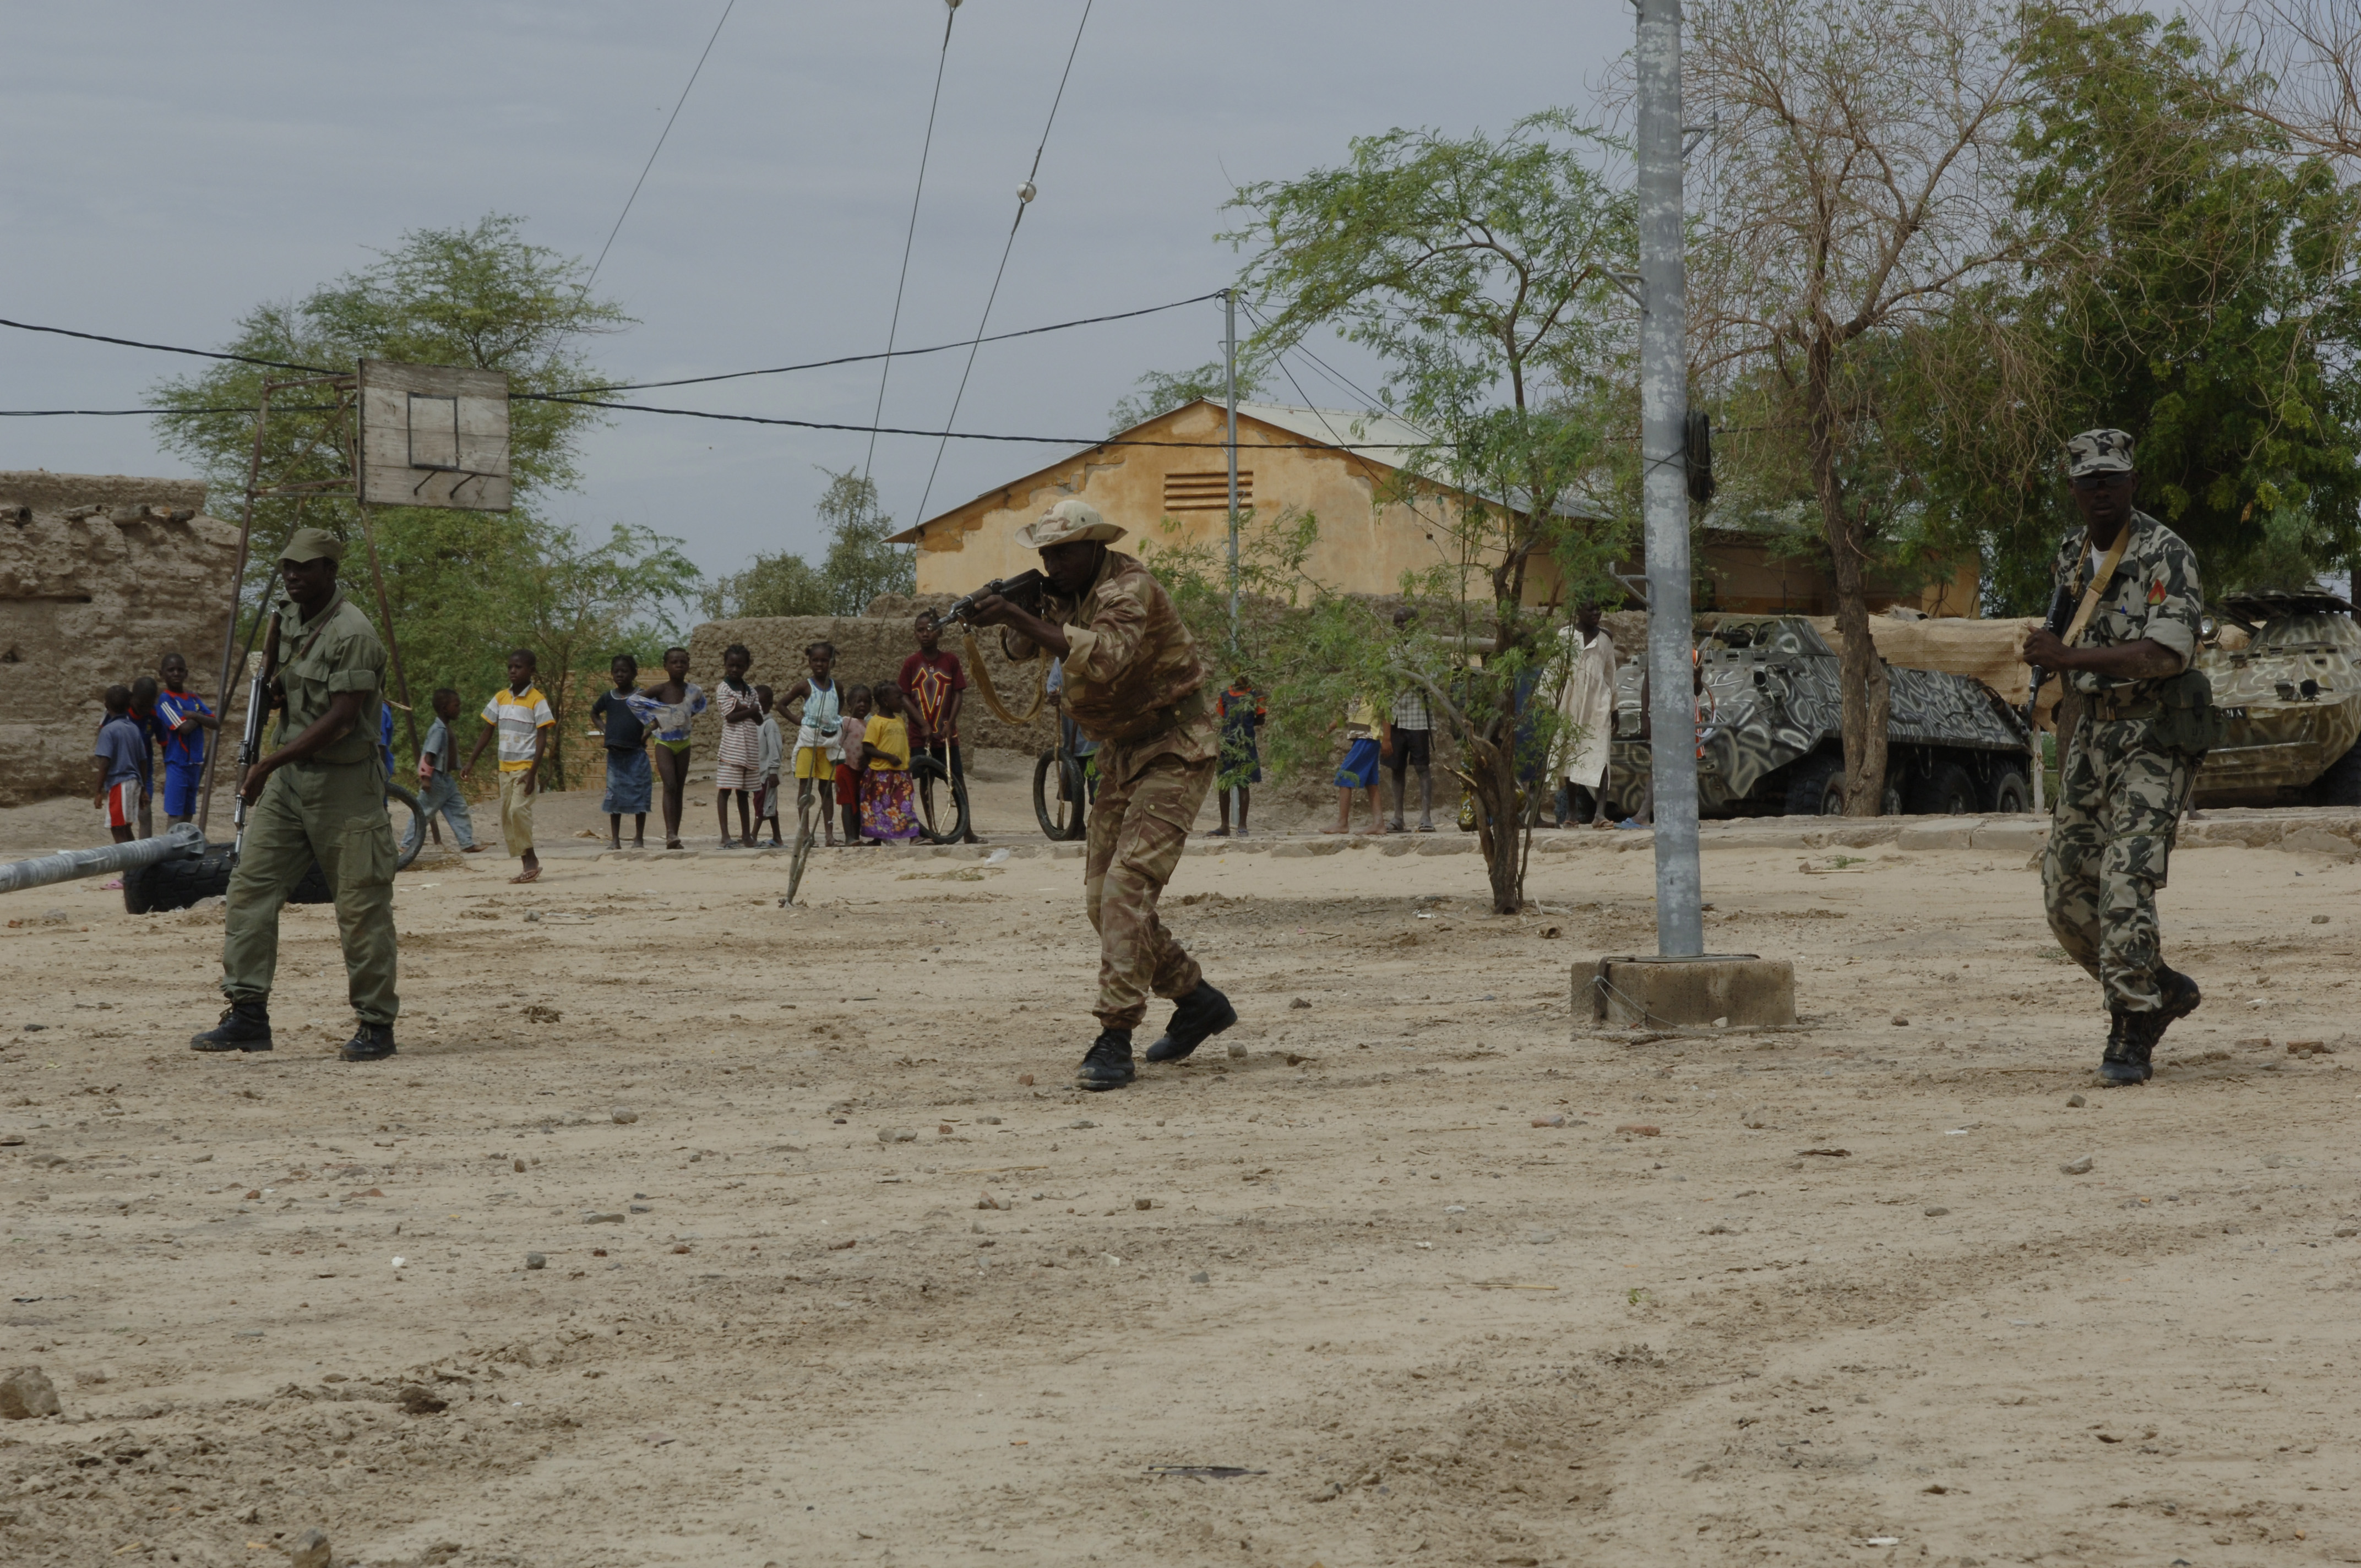 http://upload.wikimedia.org/wikipedia/commons/e/ea/Mali_army_drill_Tombouctou_070904.jpg